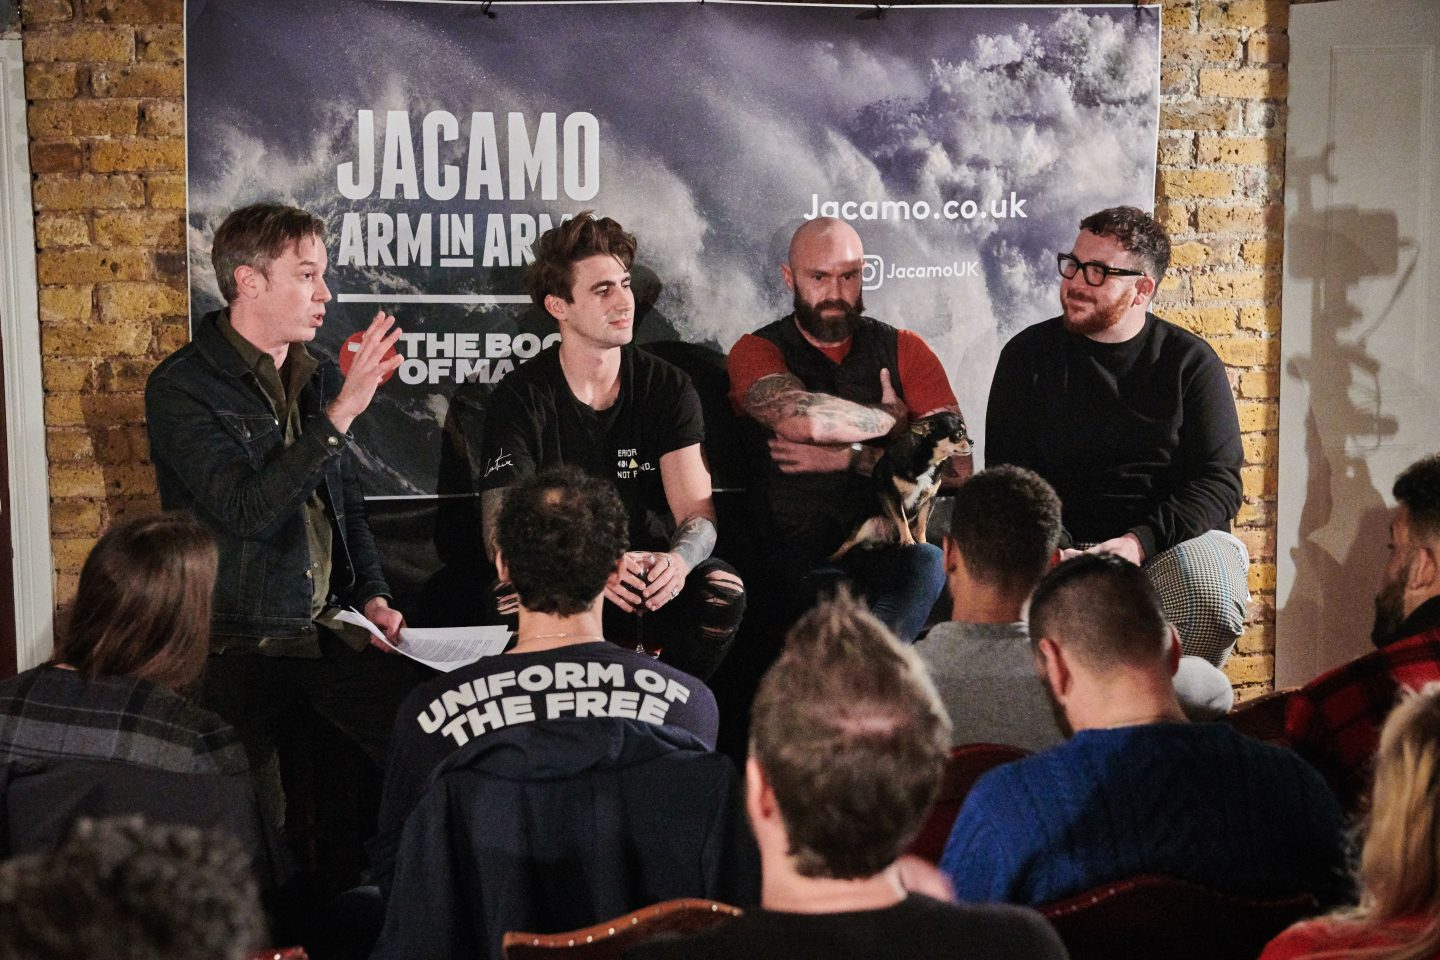 Maketh-the-Man-Anton_Welcome-jacamo arm in arms 27th november talks